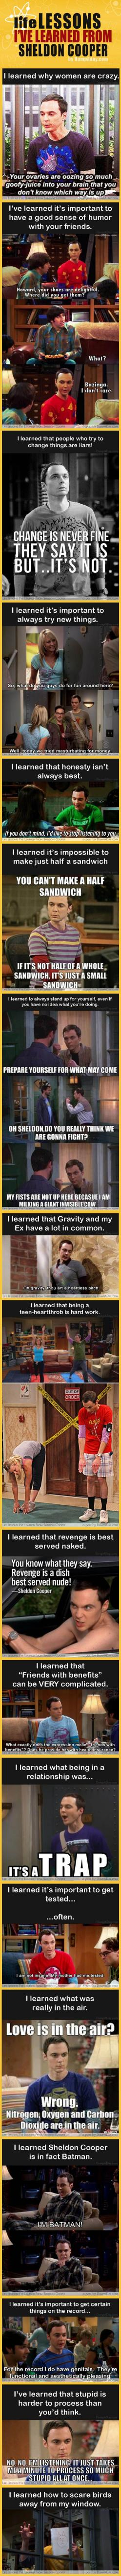 Dump A Day Life Lessons I Learned From Sheldon Cooper - 24 Pics: Sheldon Cooper, Life Lessons, Big Bang Theory Humor Quotes, Funny Sheldon Quotes, Big Bang Theory Funny Quotes, Big Bang Theory Funny Sheldon, Big Bang Theory Quotes Sheldon, Big Bang Theory